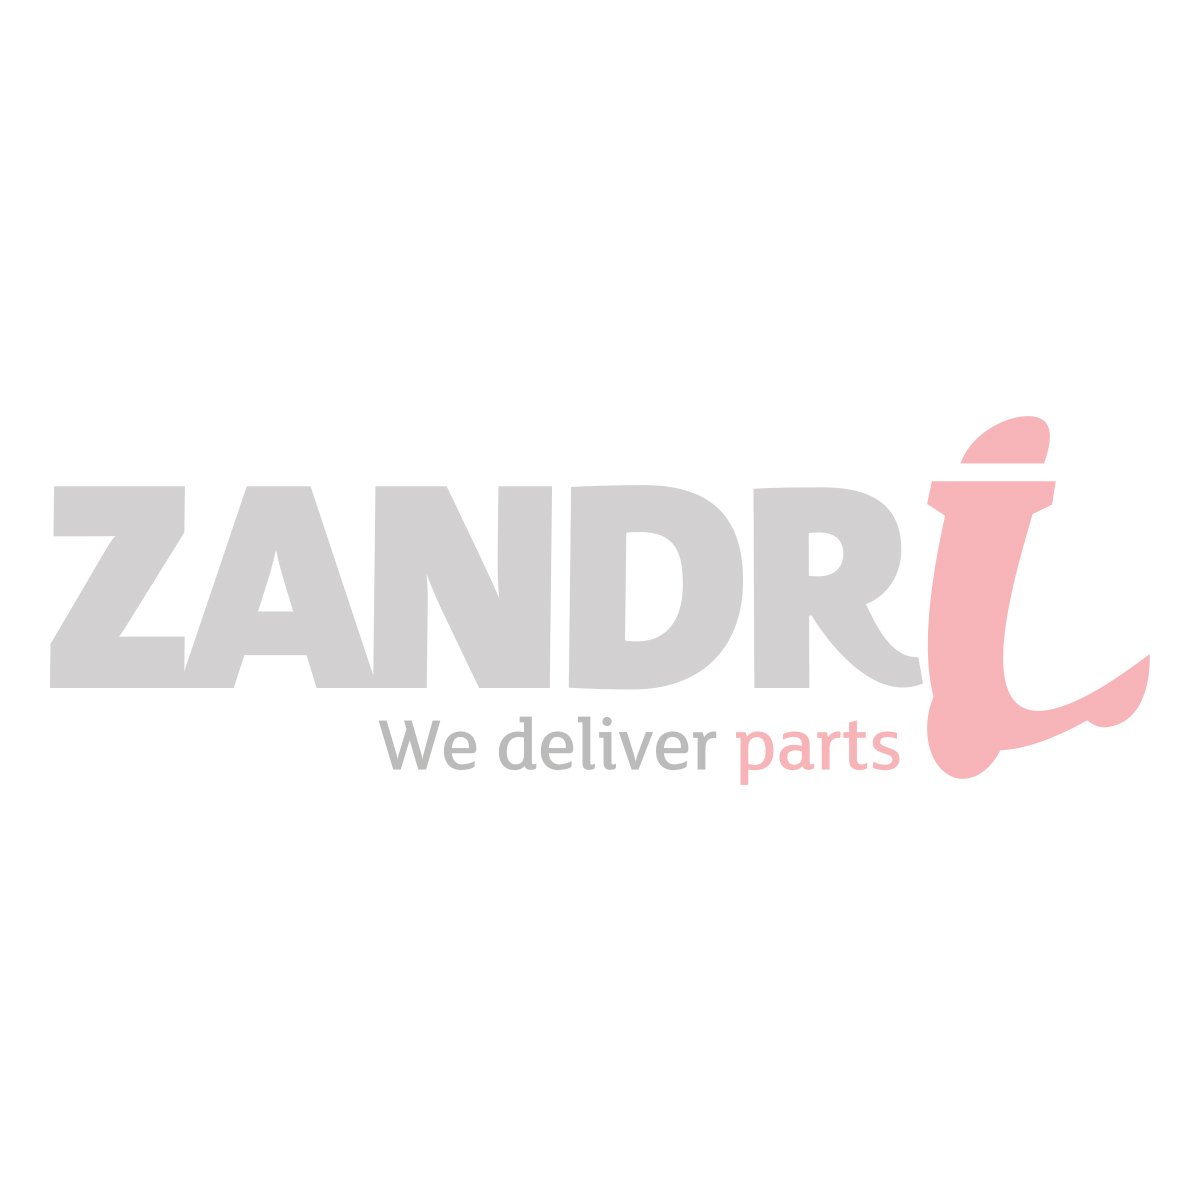 Overbrenging Kymco Delivery 4-takt wit